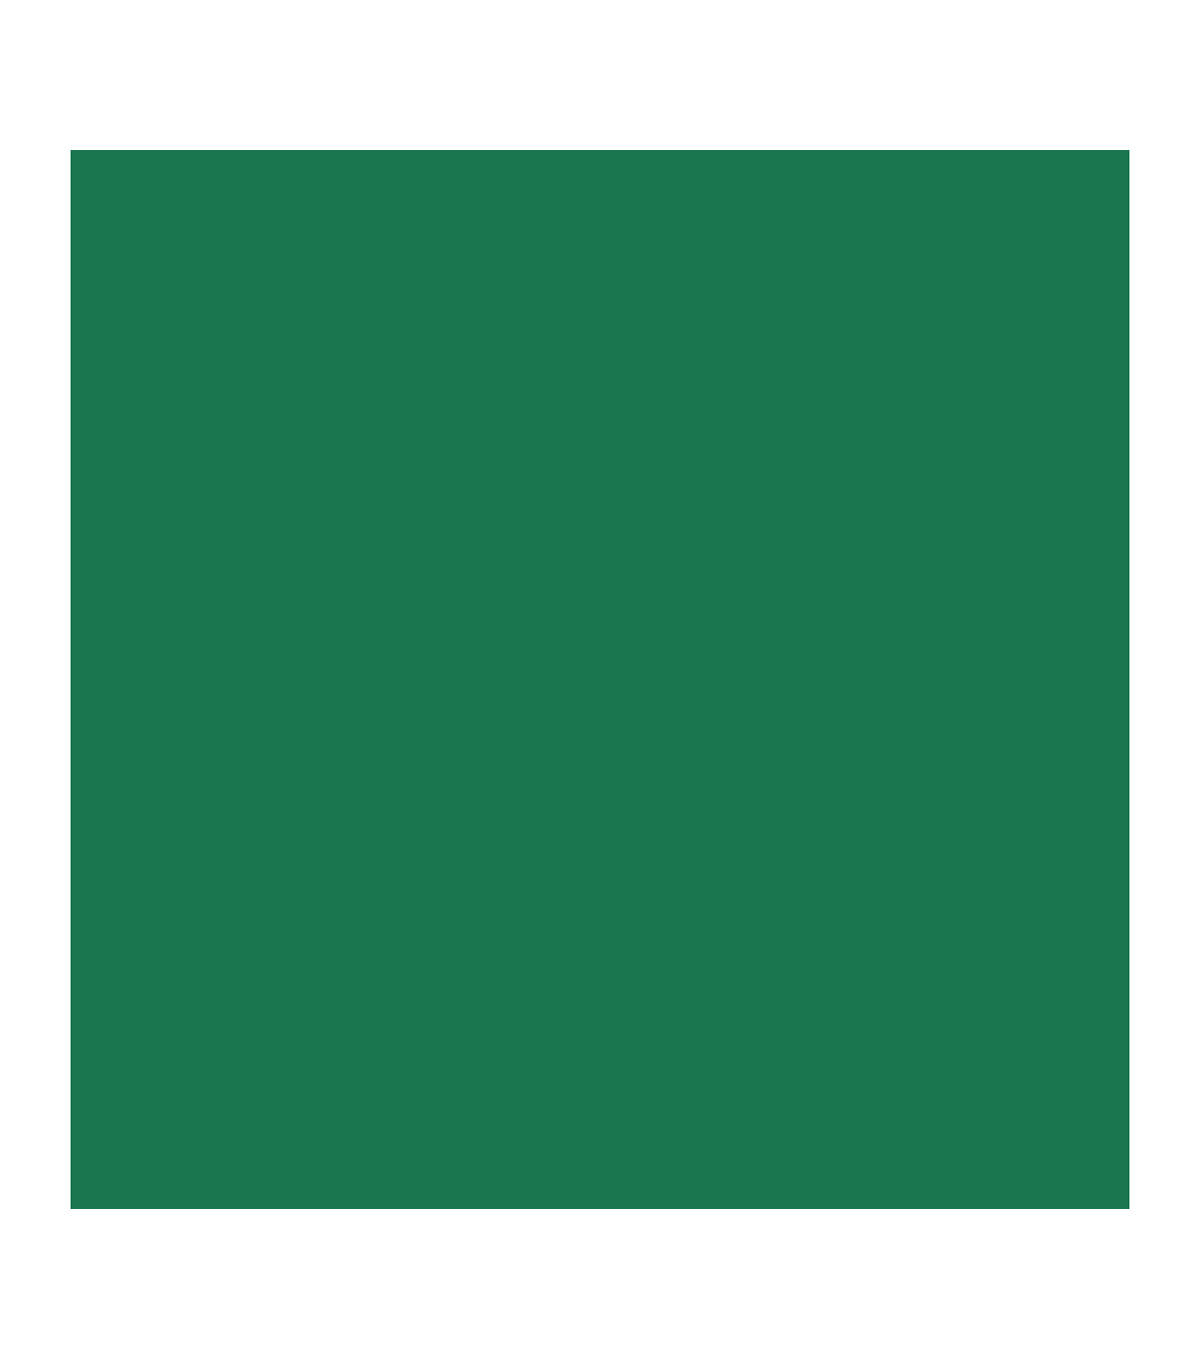 Bob Ross 1.25 oz. Landscape Oil Paint-Phthalo Green